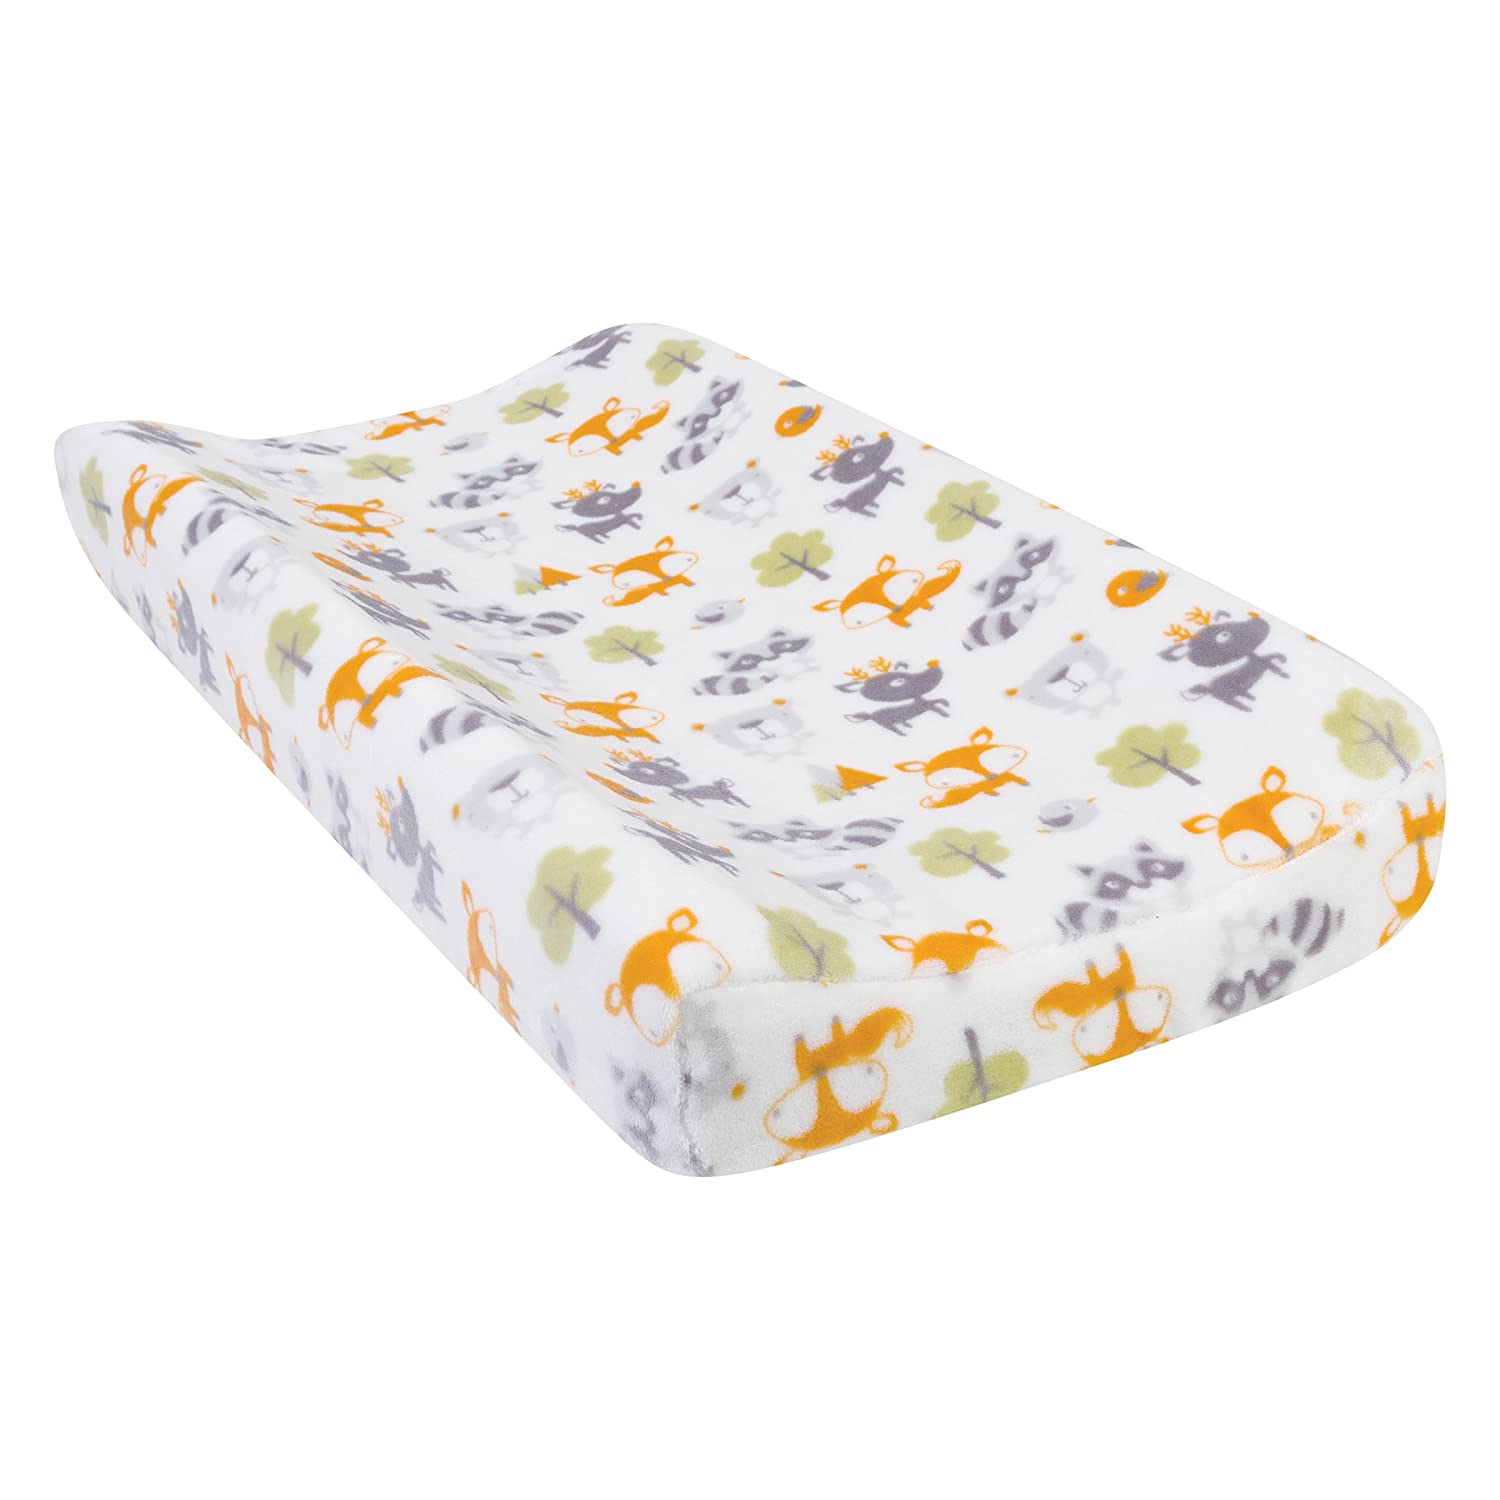 Trend Lab Plush Changing Pad Cover, Green Forest Pals 102895